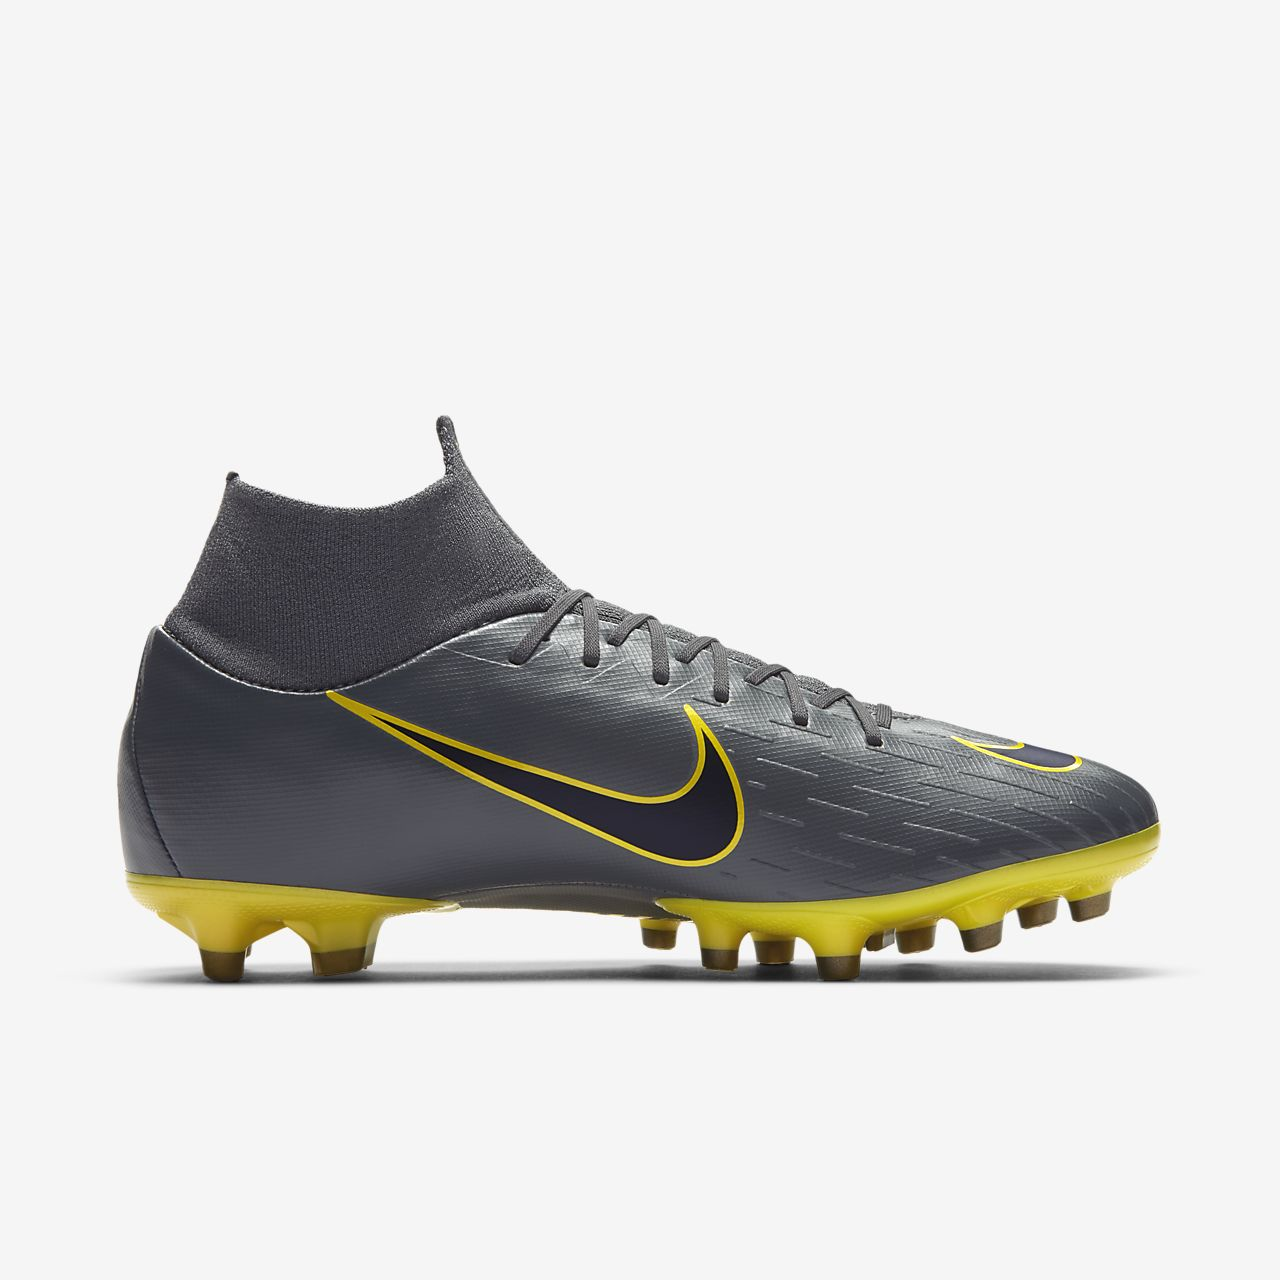 5a03f9a7dc94 ... Nike Mercurial Superfly VI Pro AG-PRO Artificial-Grass Football Boot